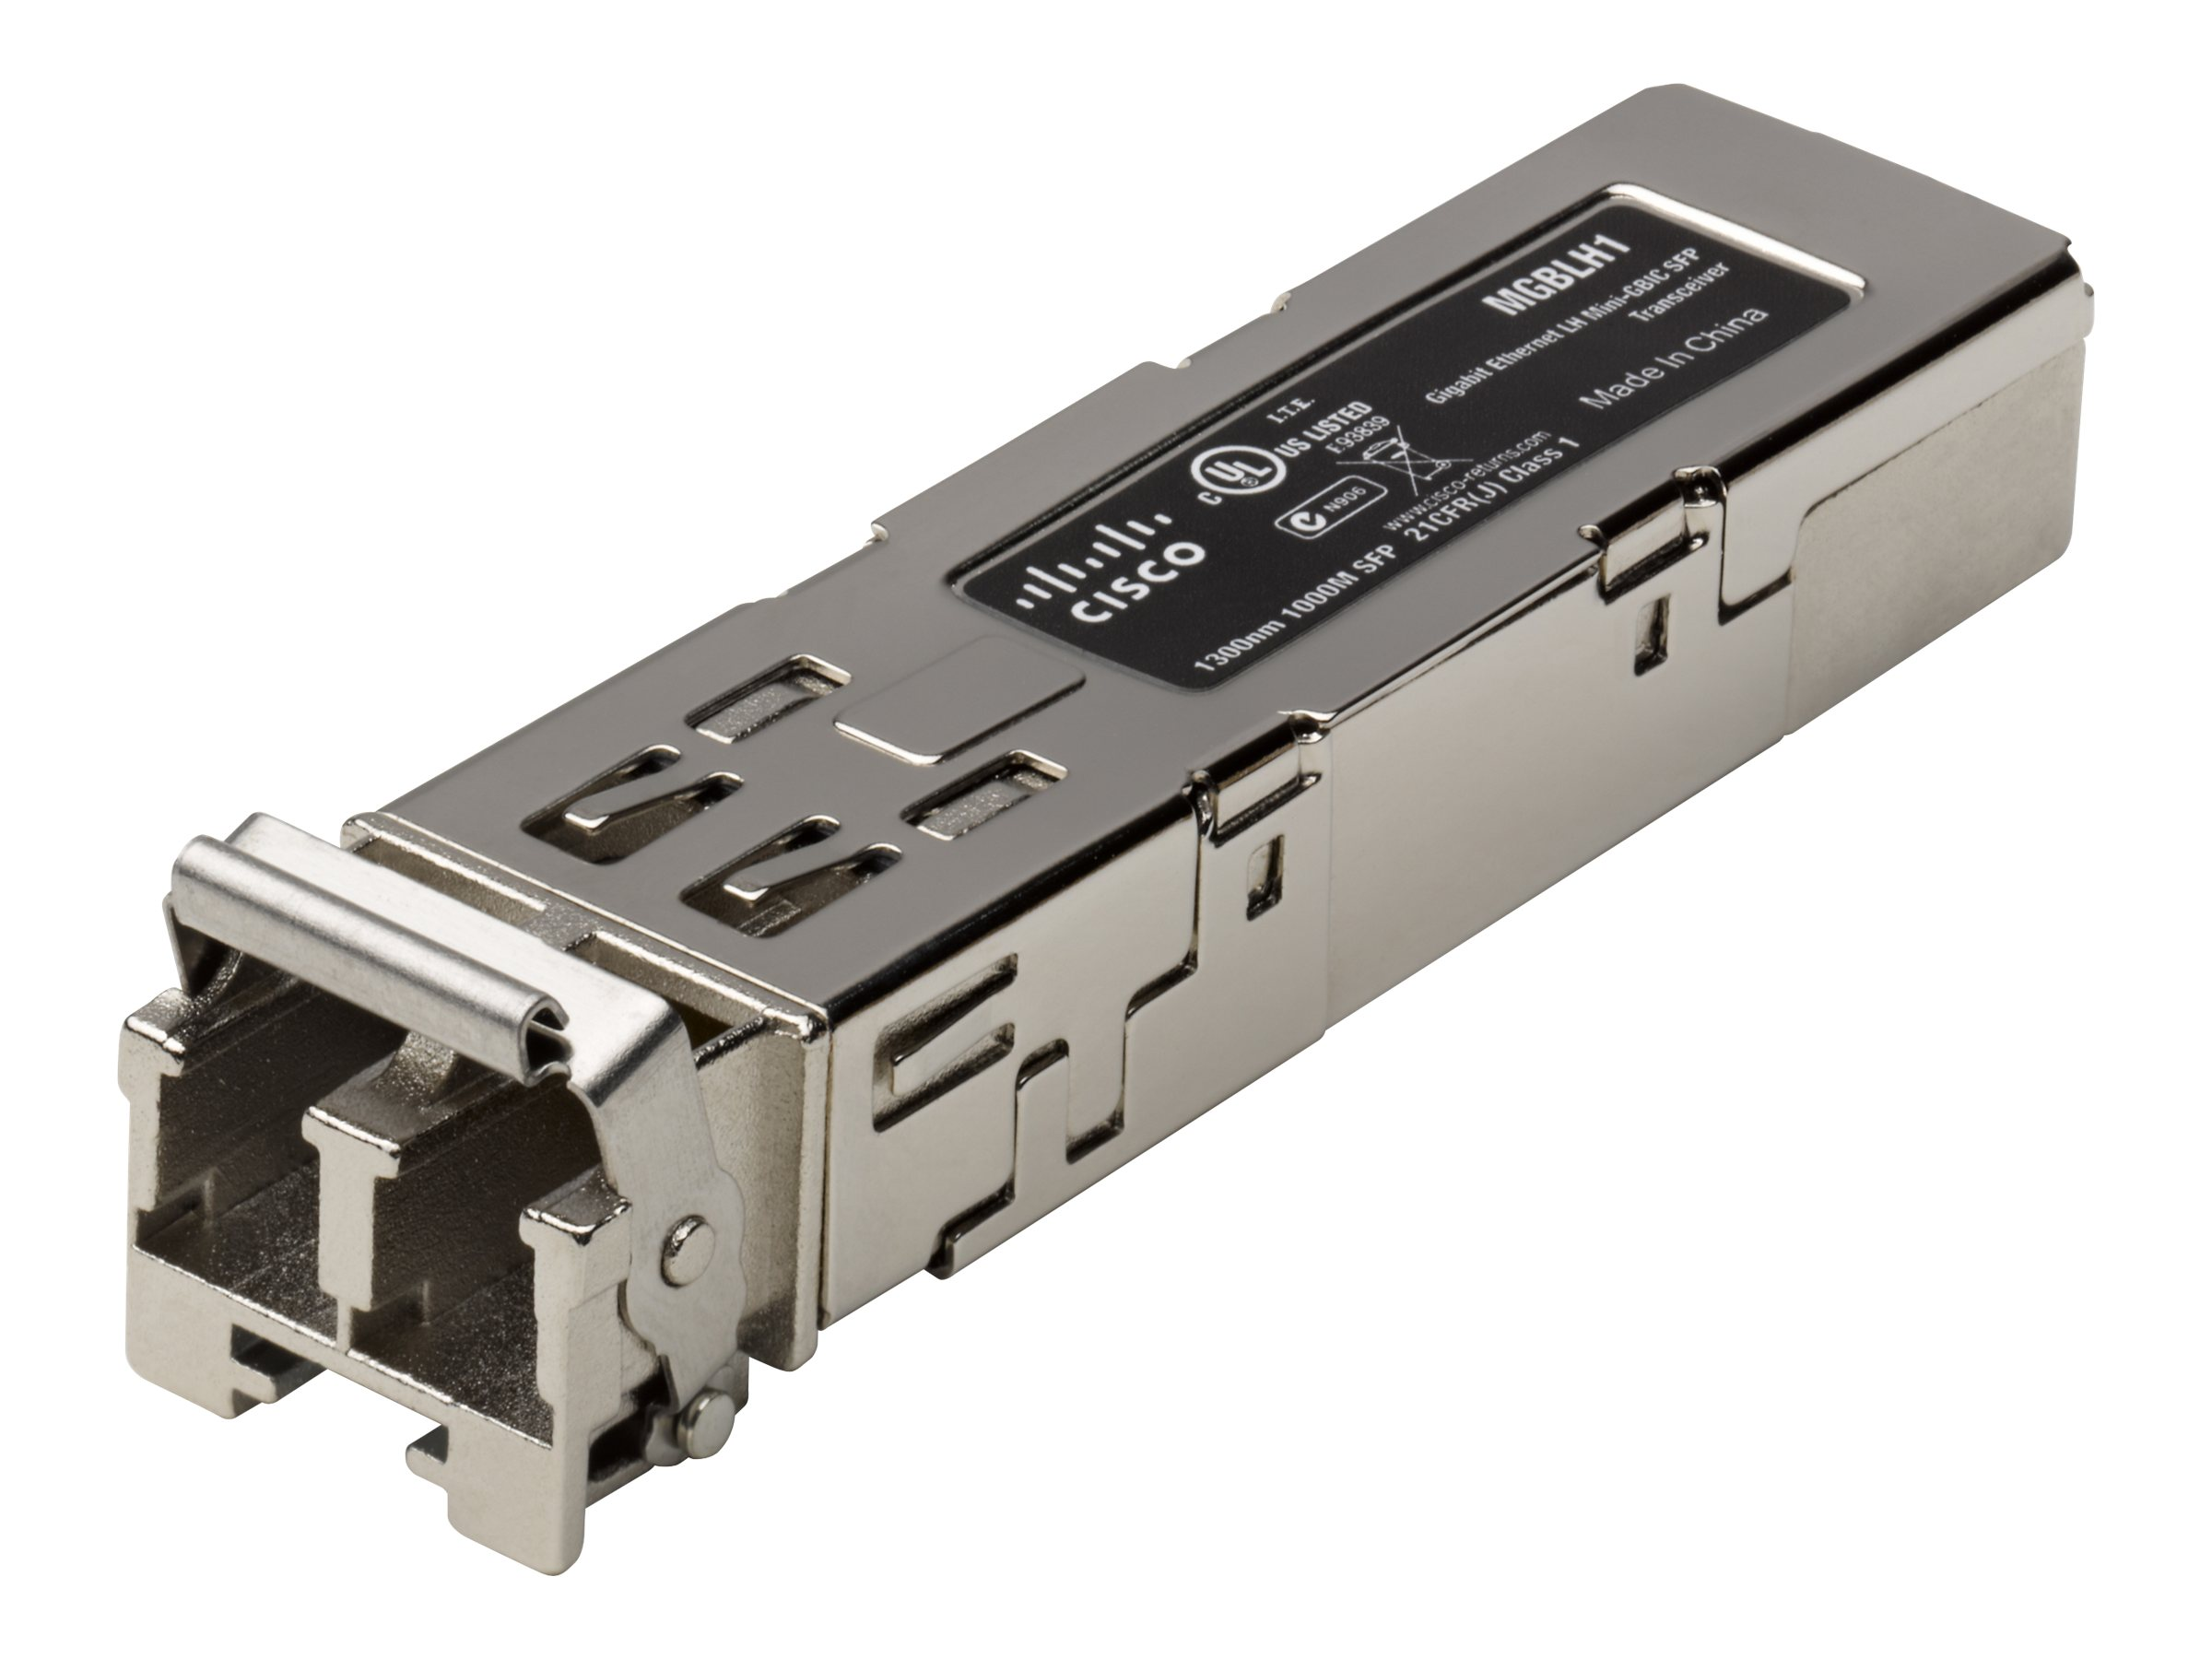 Cisco Small Business MGBLH1 - SFP (Mini-GBIC)-Transceiver-Modul - GigE - 1000Base-LH - LC - bis zu 40 km